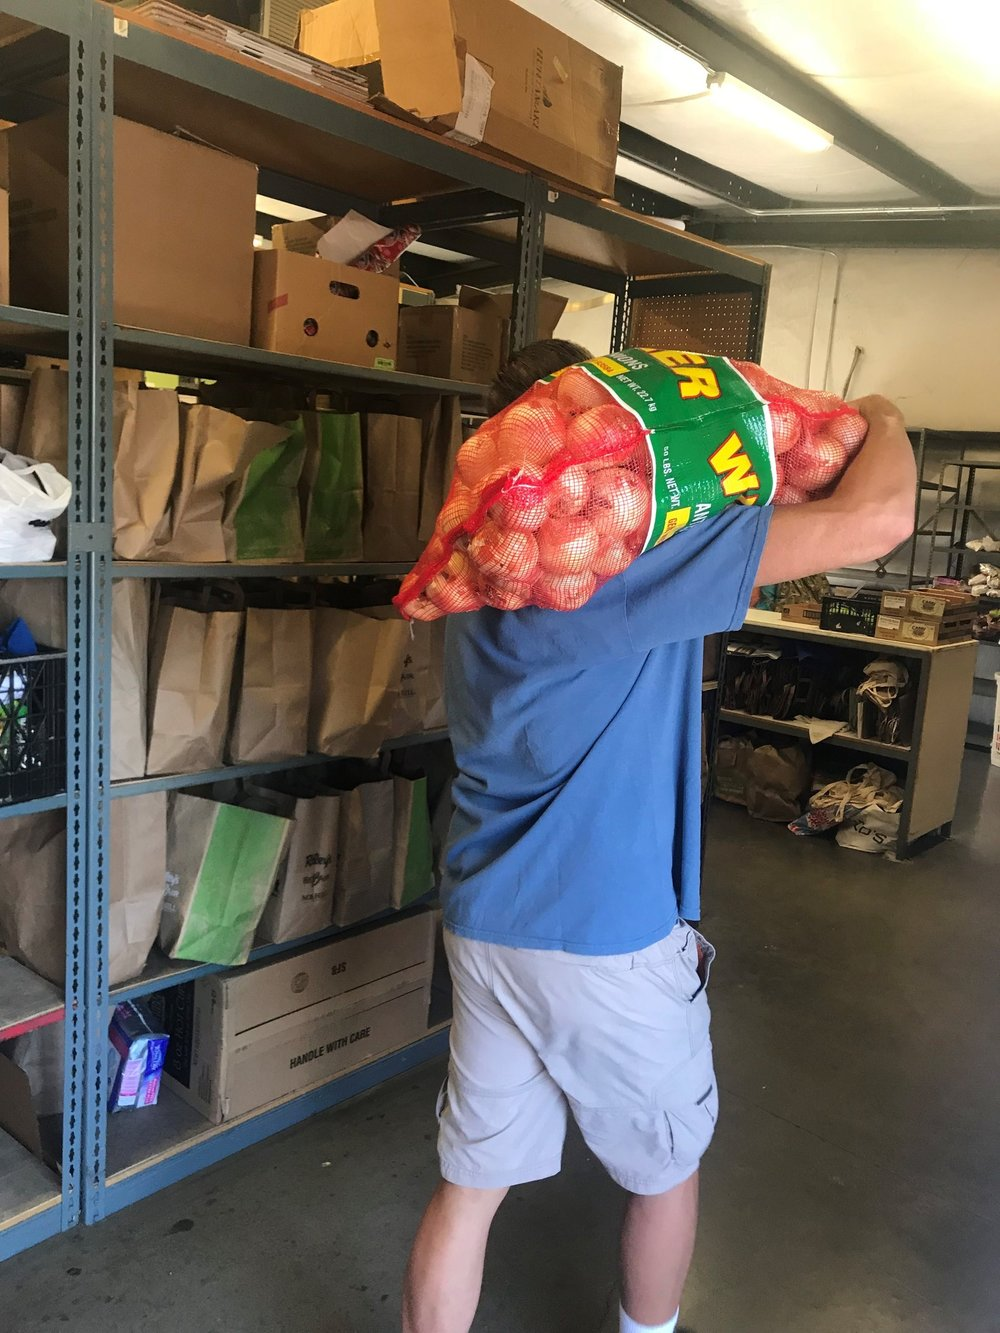 A volunteer offloads produce items he picked up at SFBFS.